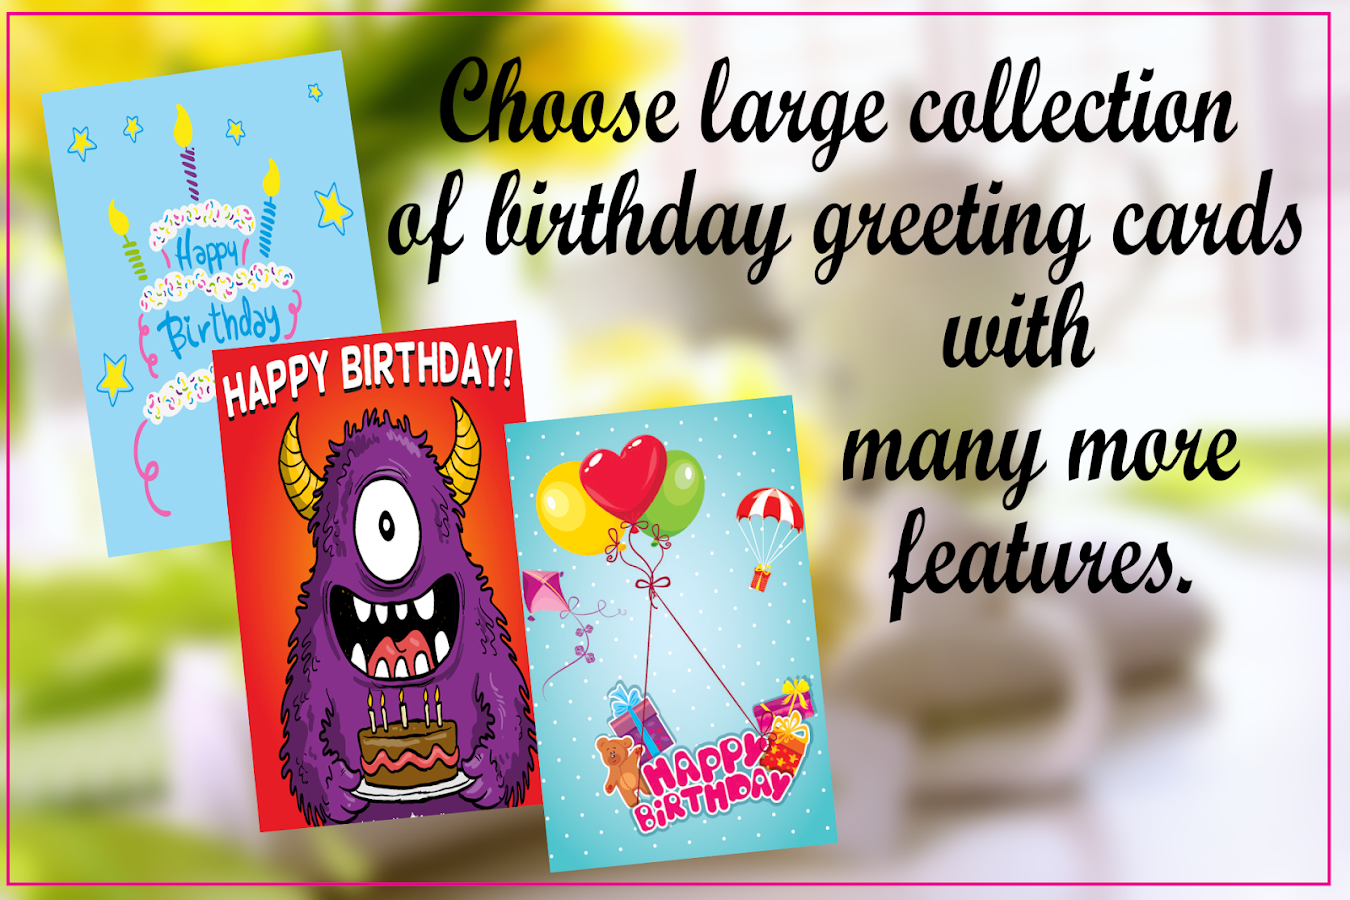 Birthday Greeting Card Maker Android Apps on Google Play – Birthday Card Texts